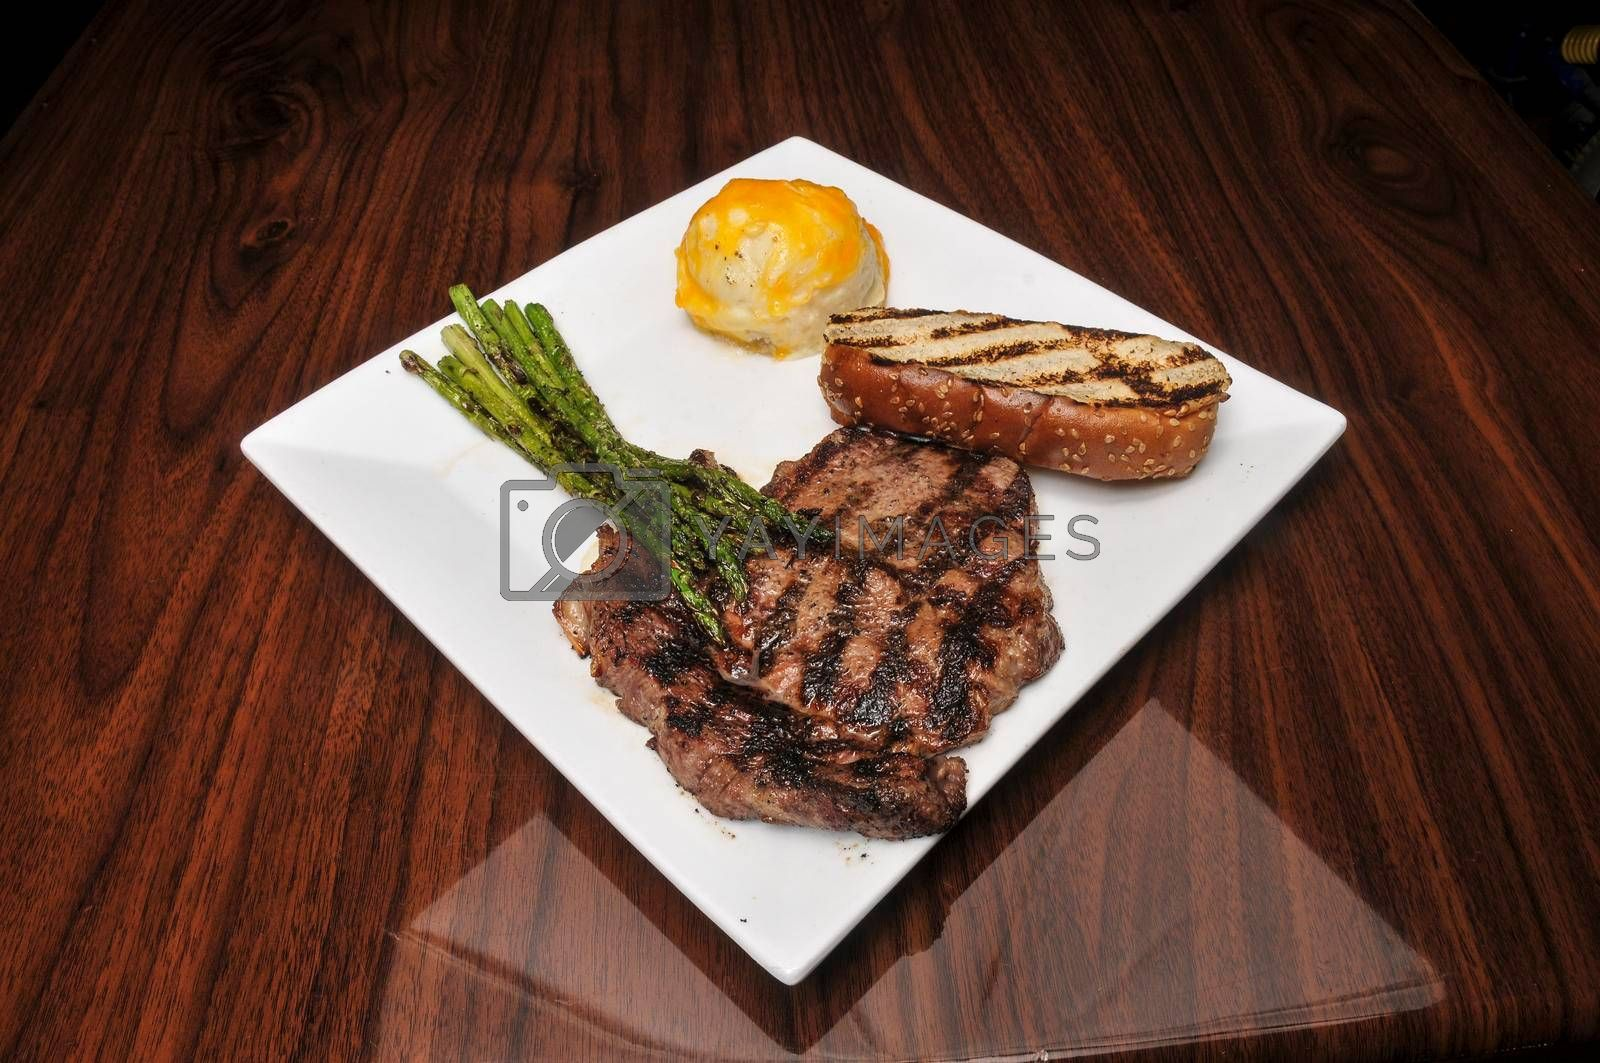 Delicious beef  steak ready to be eaten